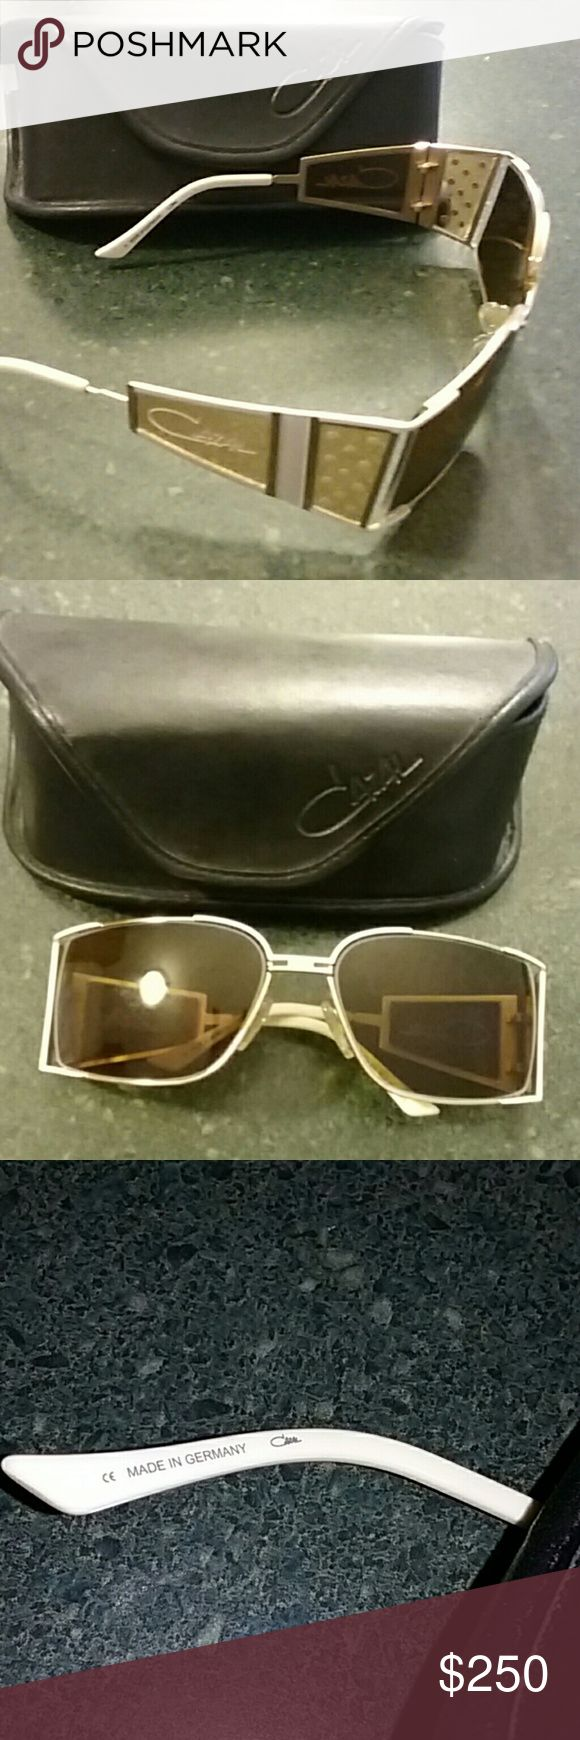 CAZAL SUNGLASSES CAZAL OLD FASHIONED GLASSES COLOR WHITE /BROWN.  MADE IN GERMANY  VERY GOOD CONDITION. cazal Accessories Glasses